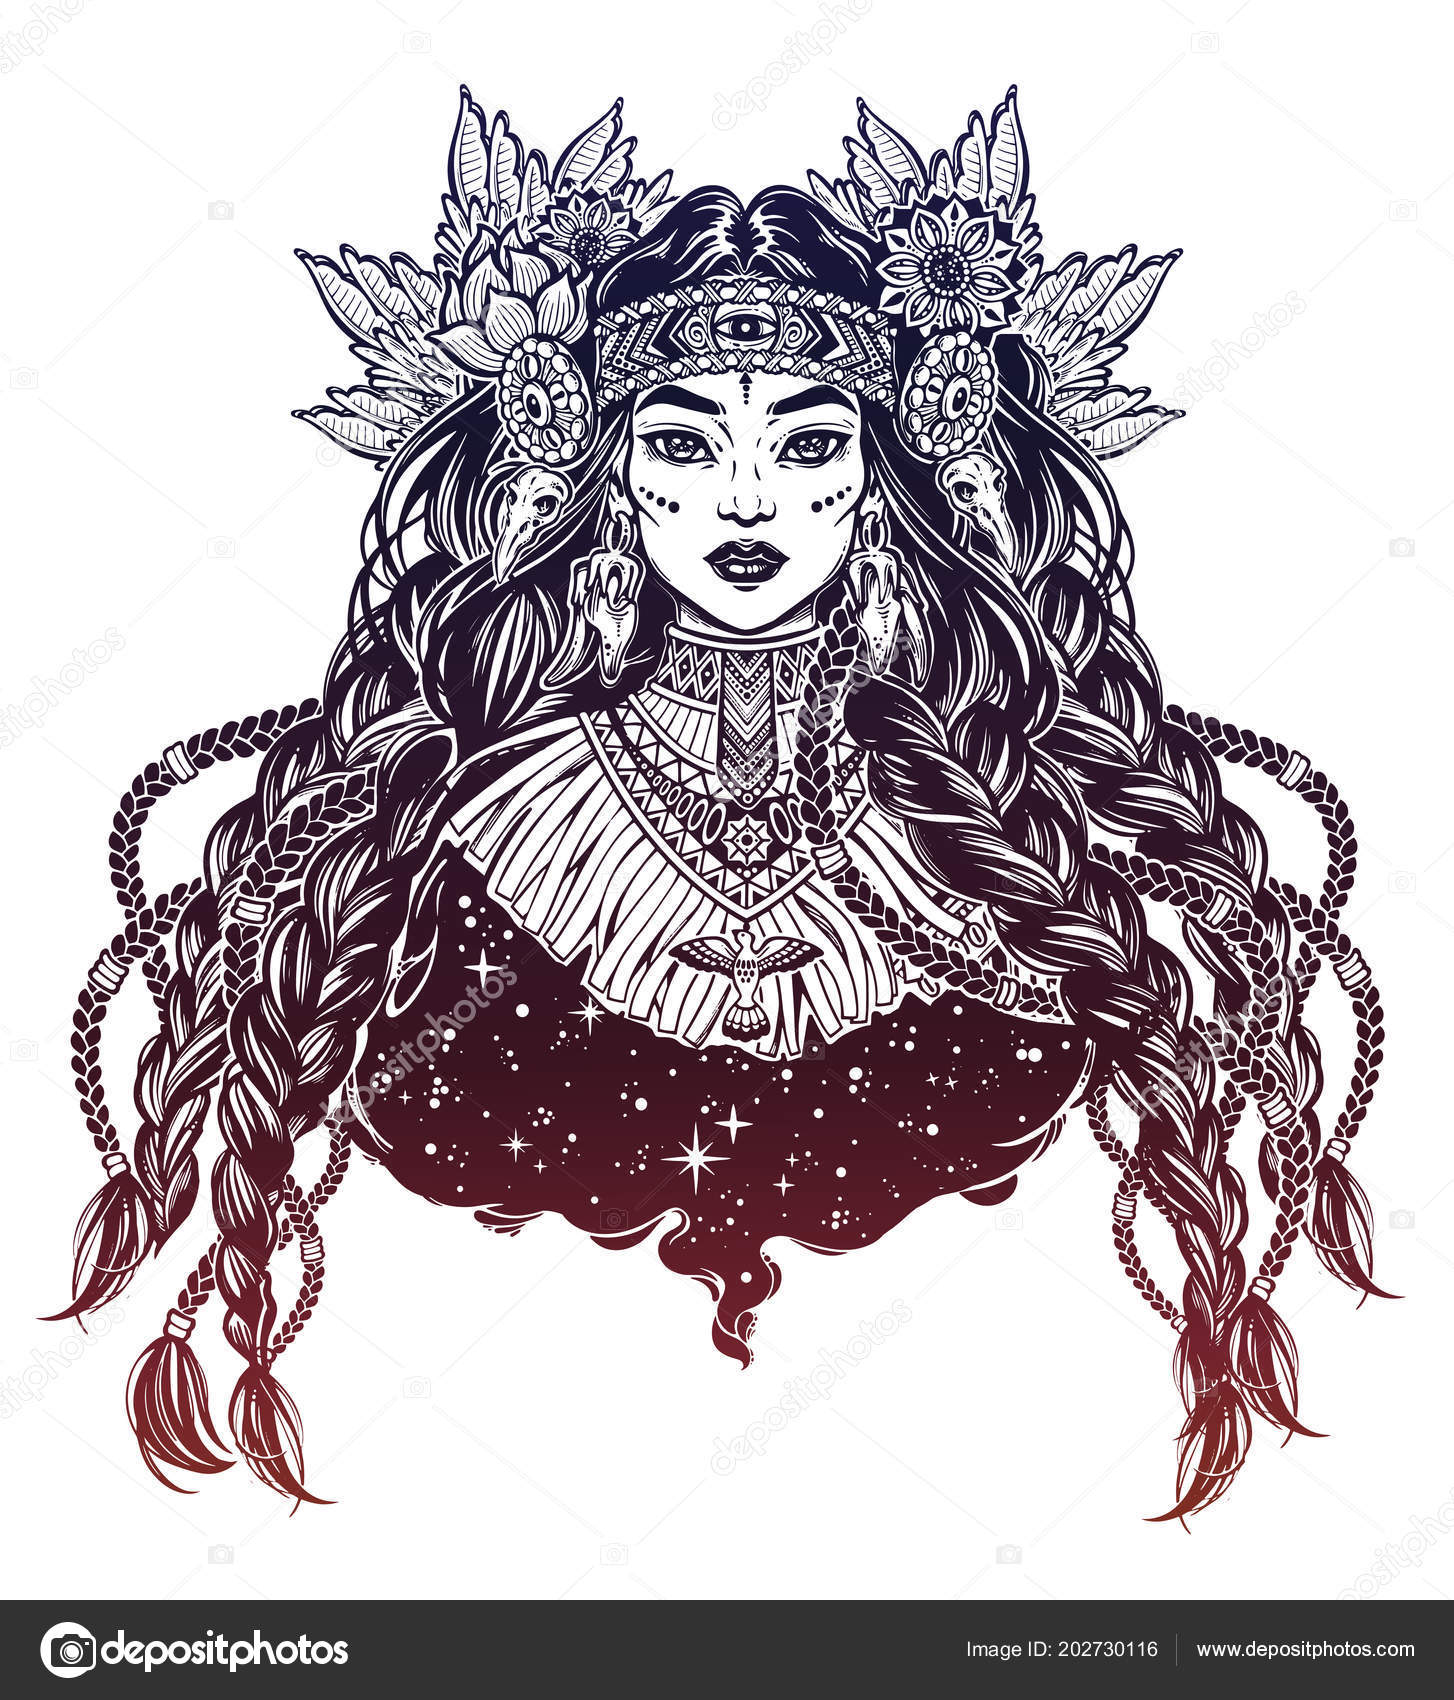 Beautiful native american indian woman ethnic tribal shaman girl wearing traditional collar stock illustration